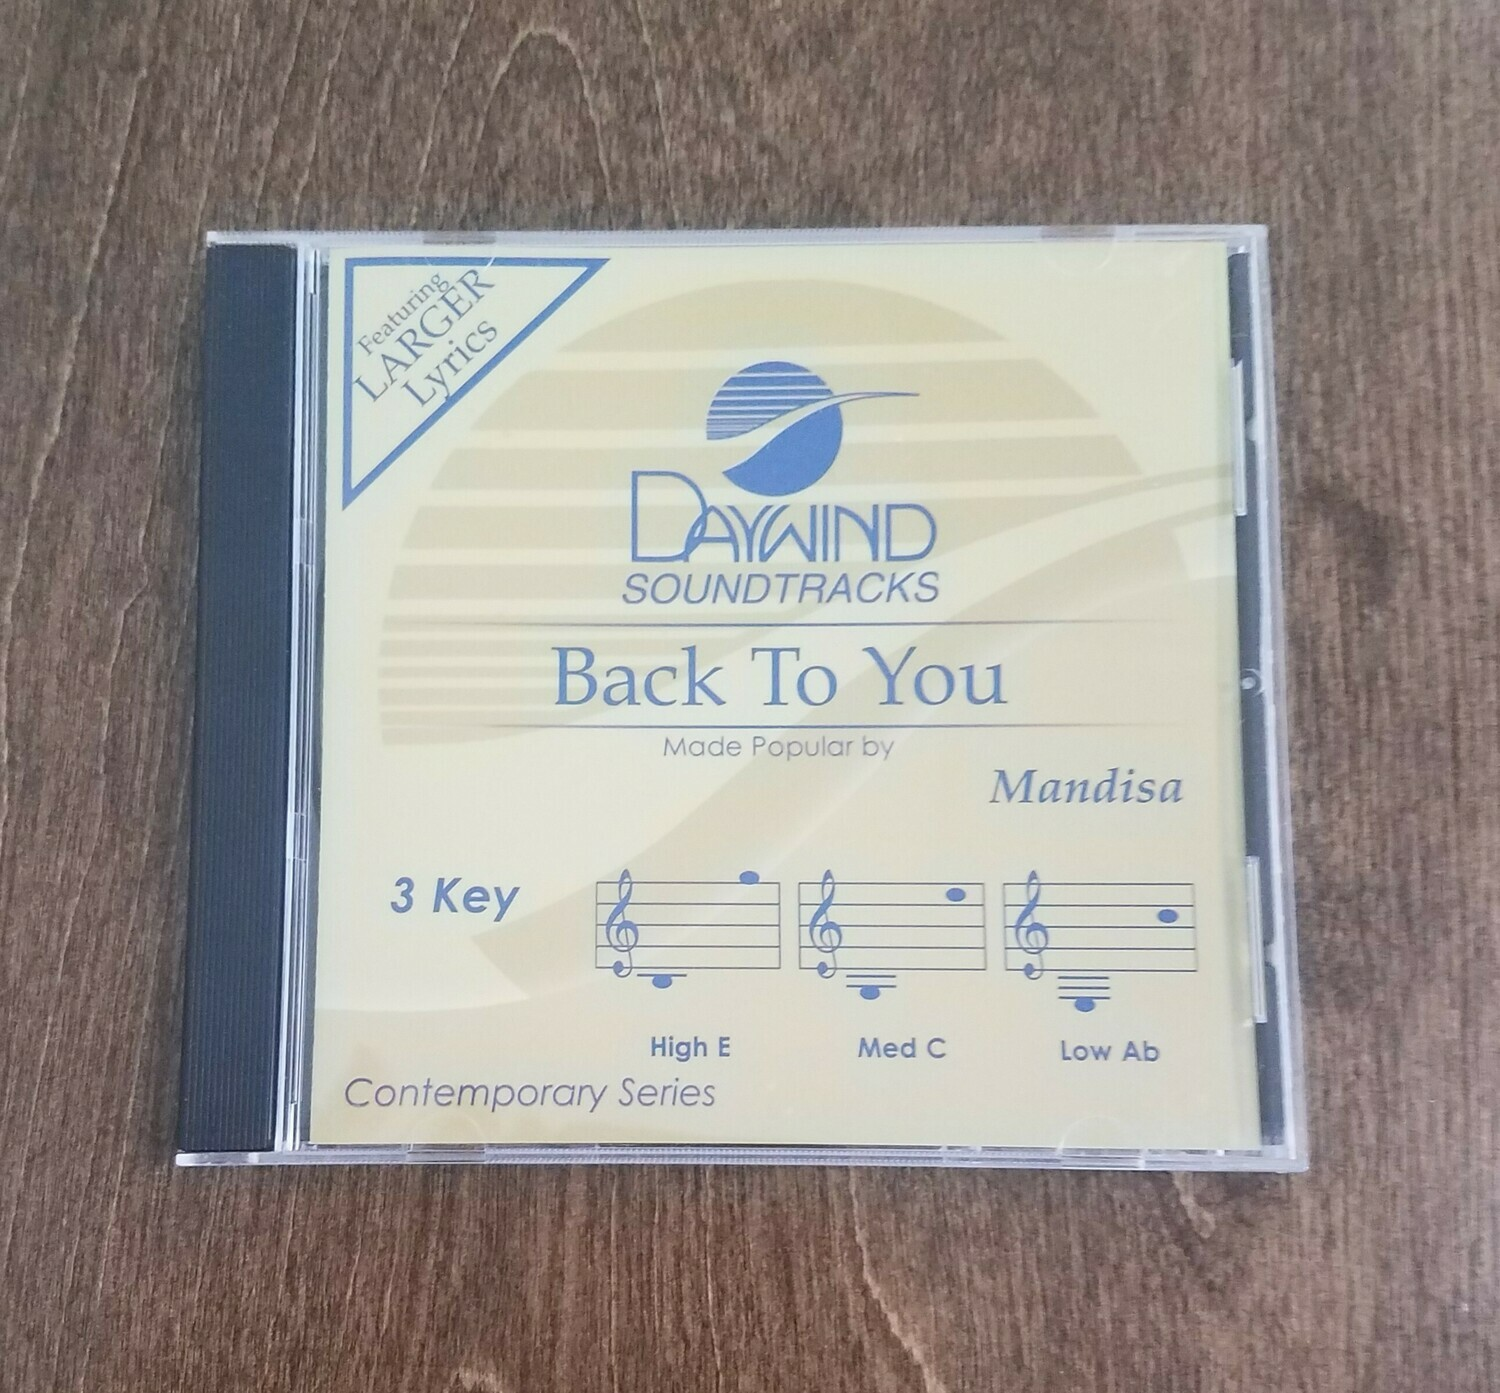 Back to You CD